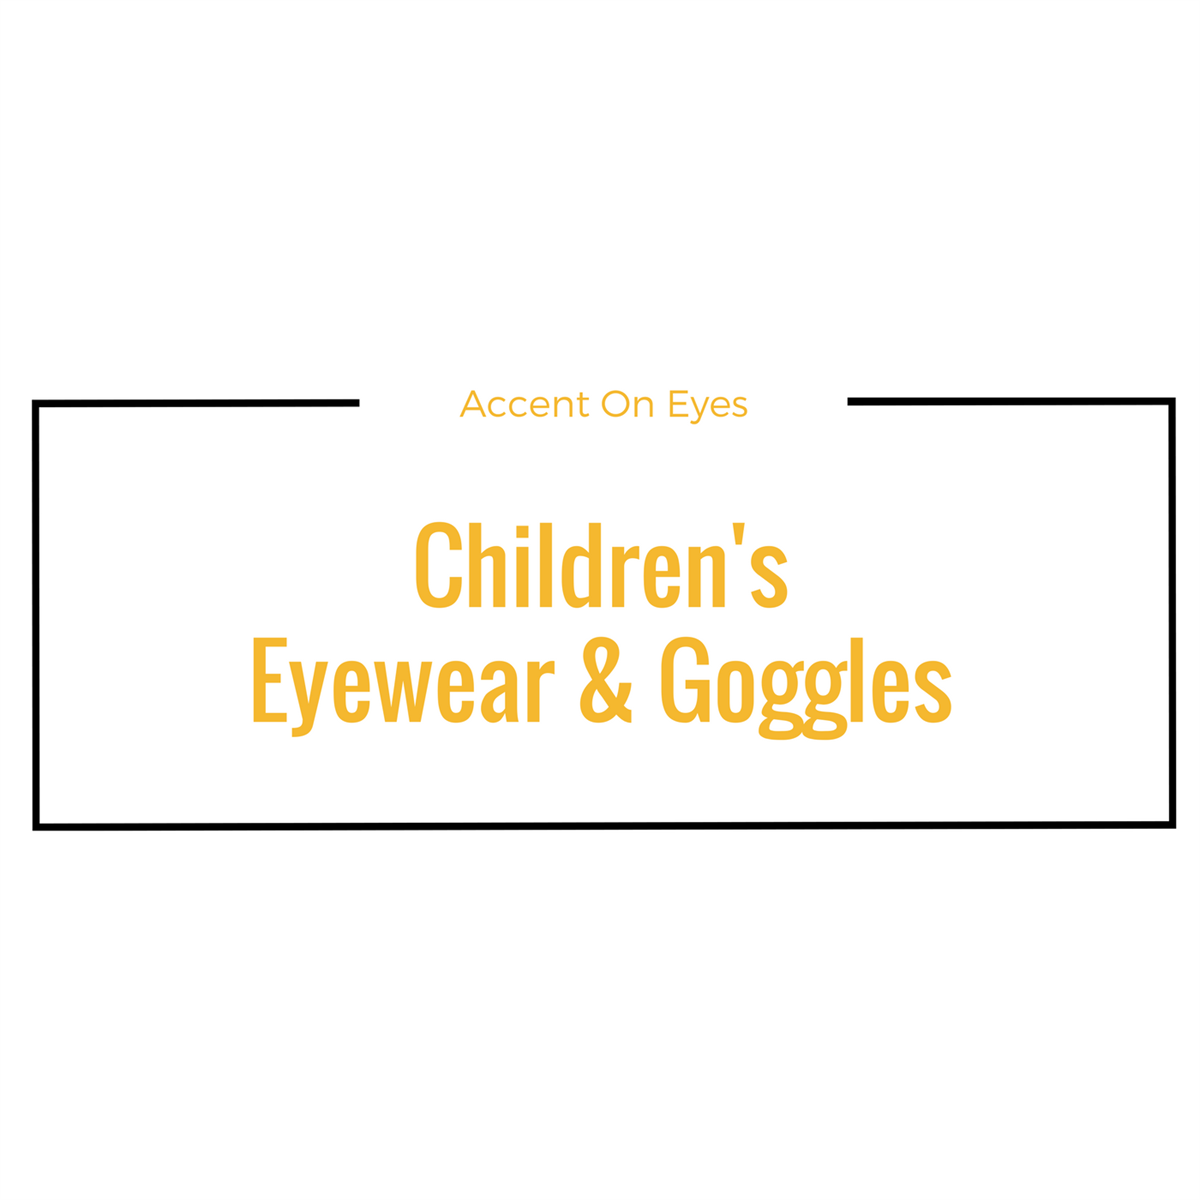 Children's Eyewear information at Accent On Eyes in Rockville Centre, NY